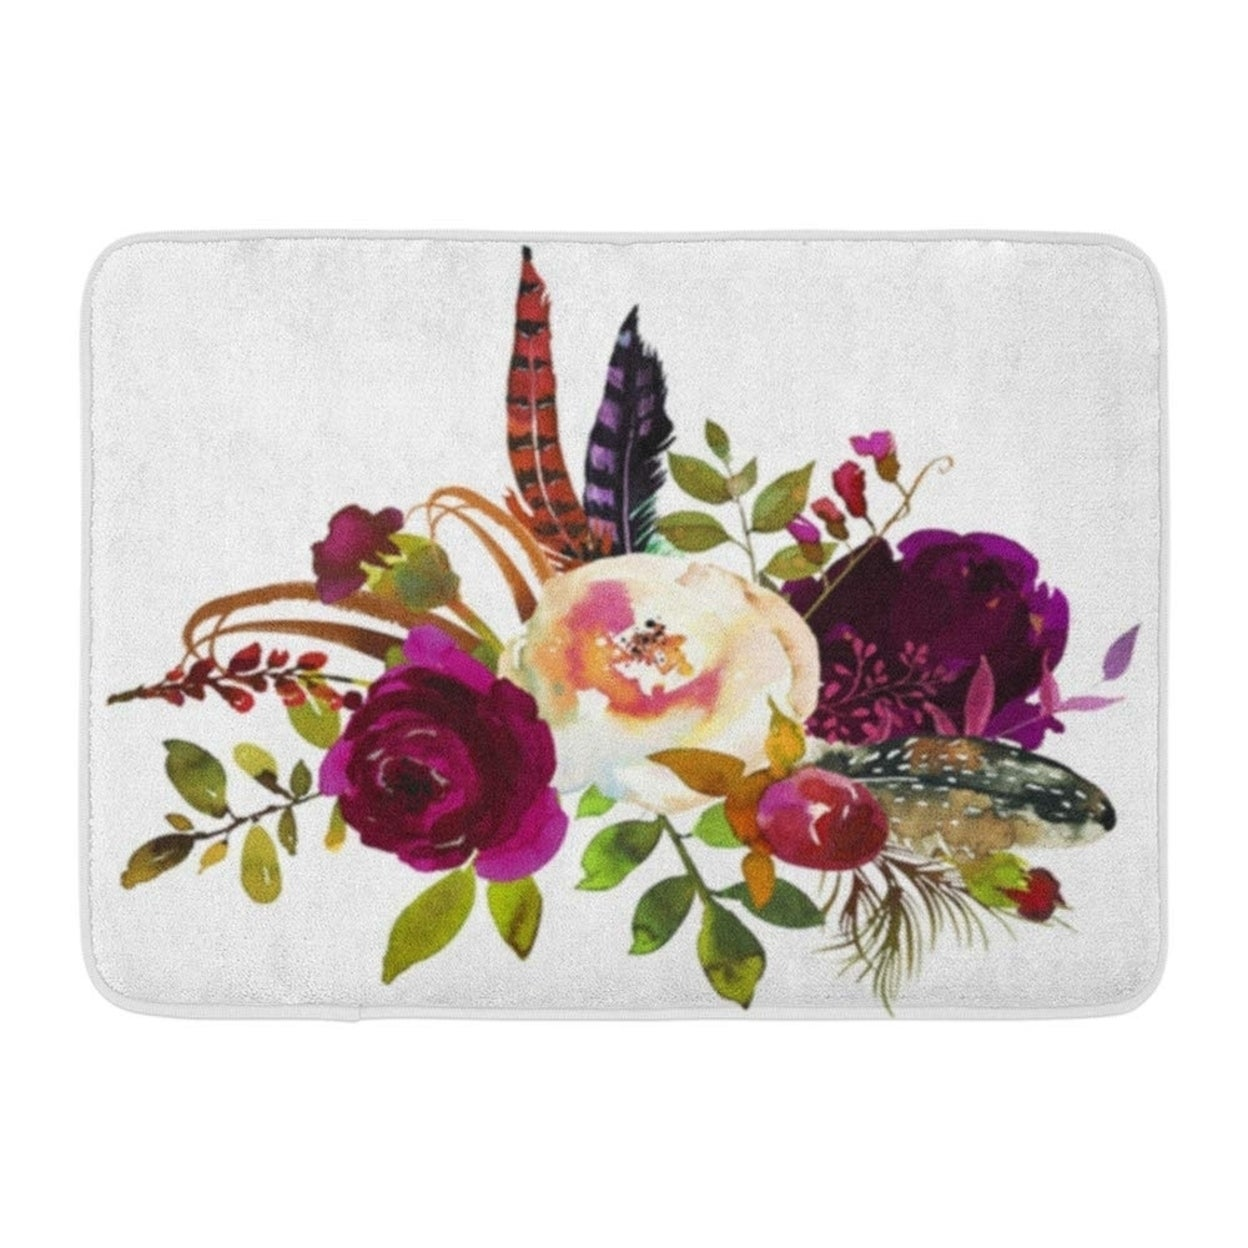 Watercolor Boho Burgundy Violet Floral Bouquet Flowers And Feathers Doormat Floor Rug Bath Mat 30x18 Inch Multi On Sale Overstock 31778080